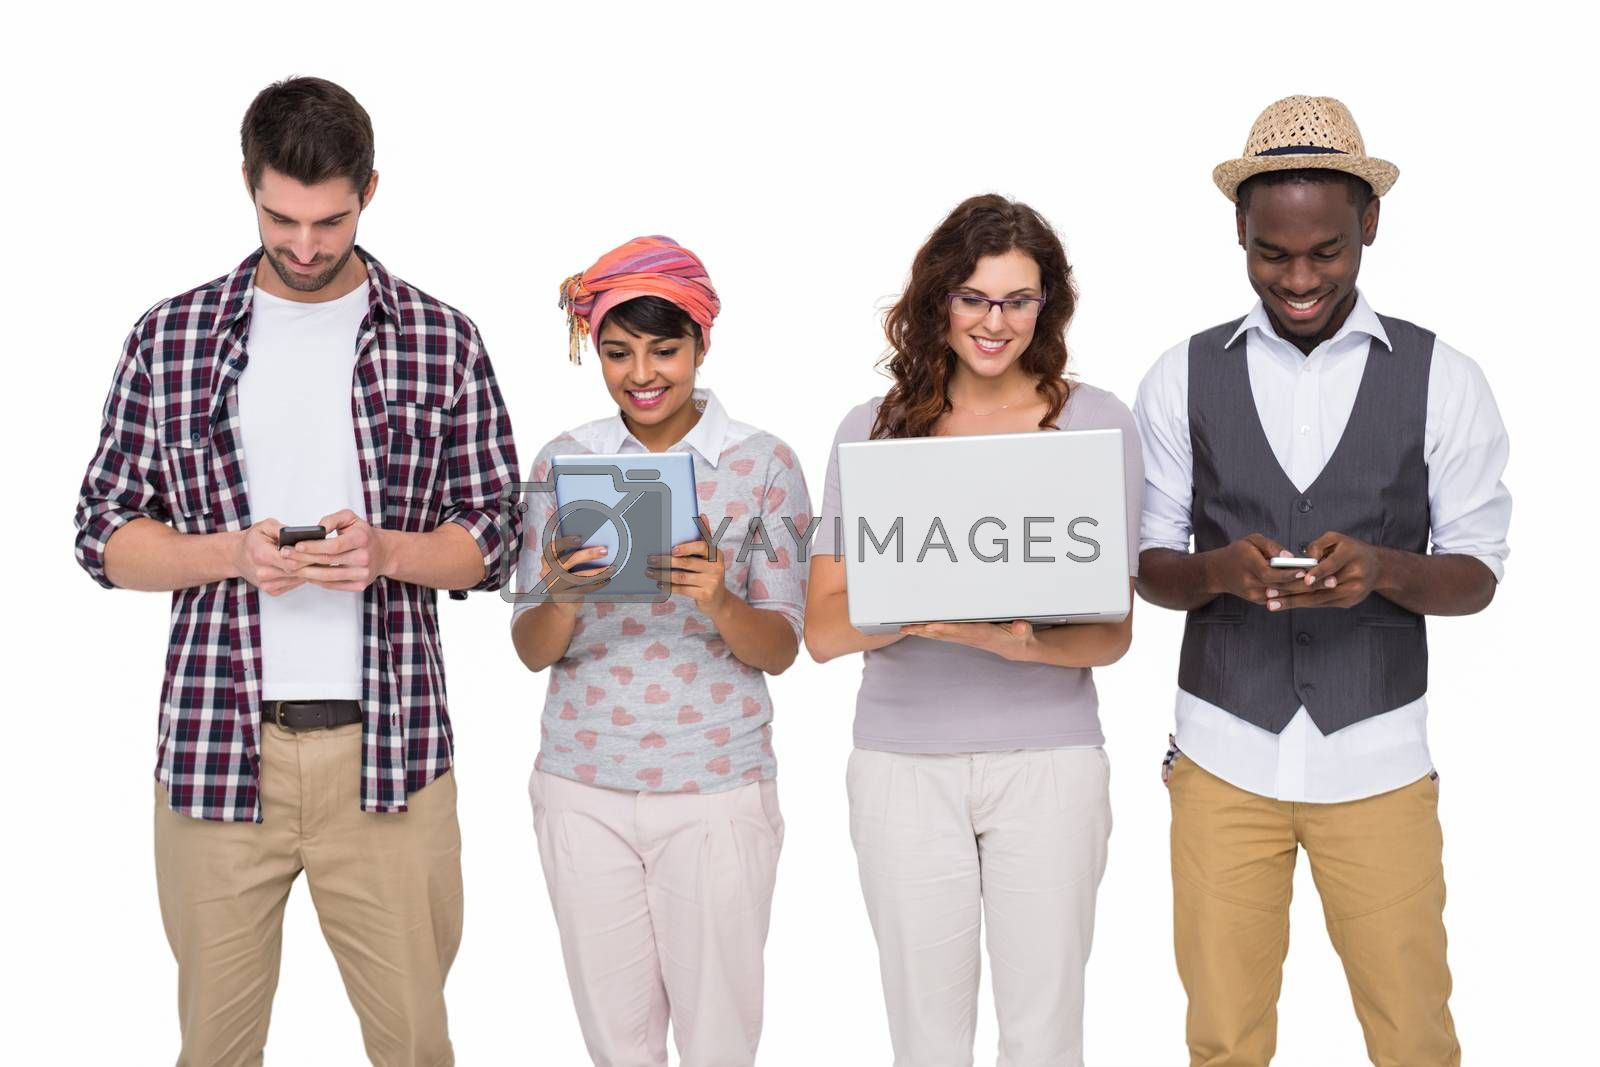 Smiling coworkers standing and using technology on white background